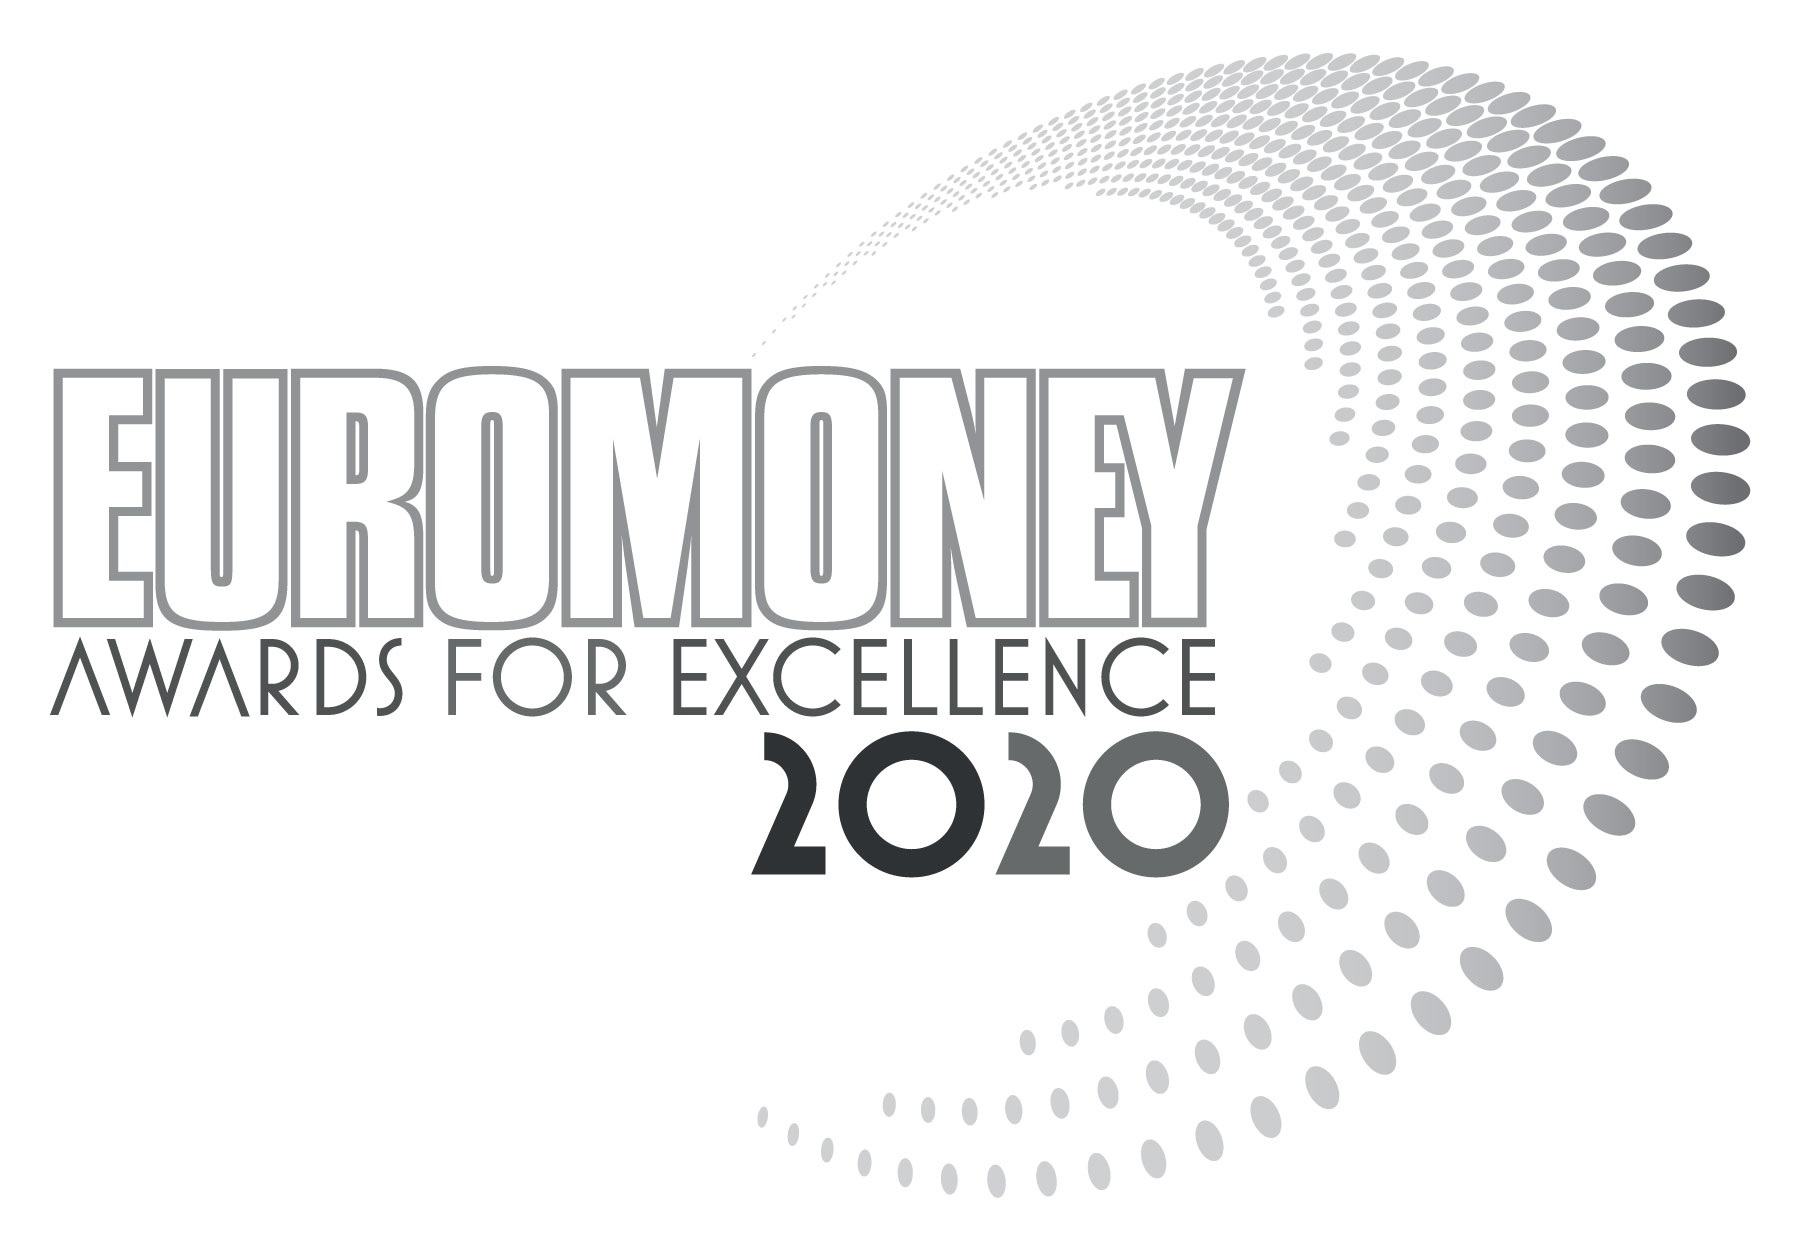 Euromoney awards for excellence 2020 image